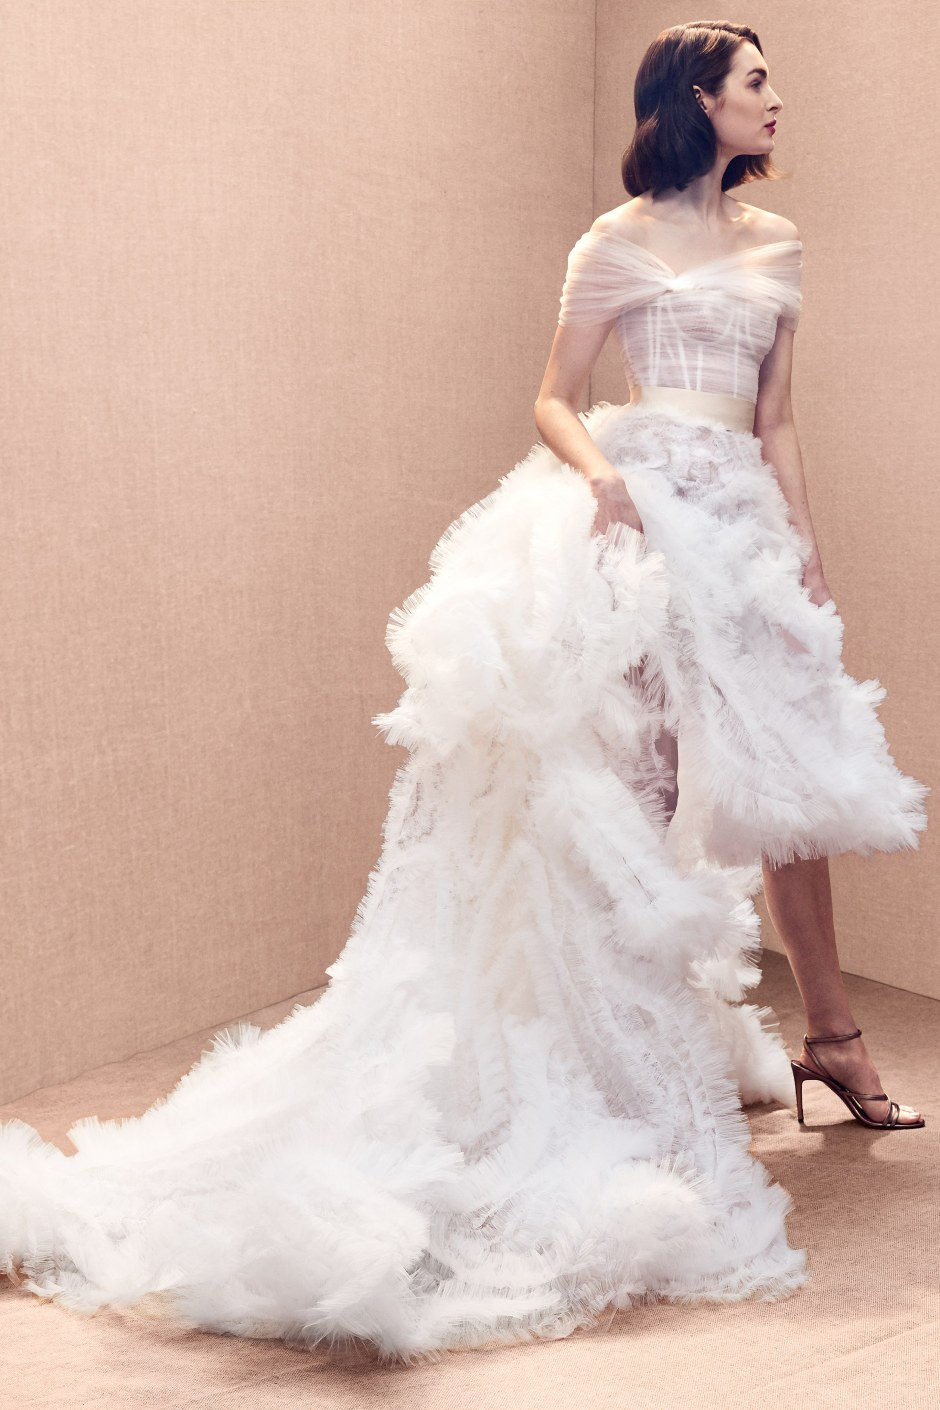 oscar-de-la-renta-wedding-dresses-spring-2020-012